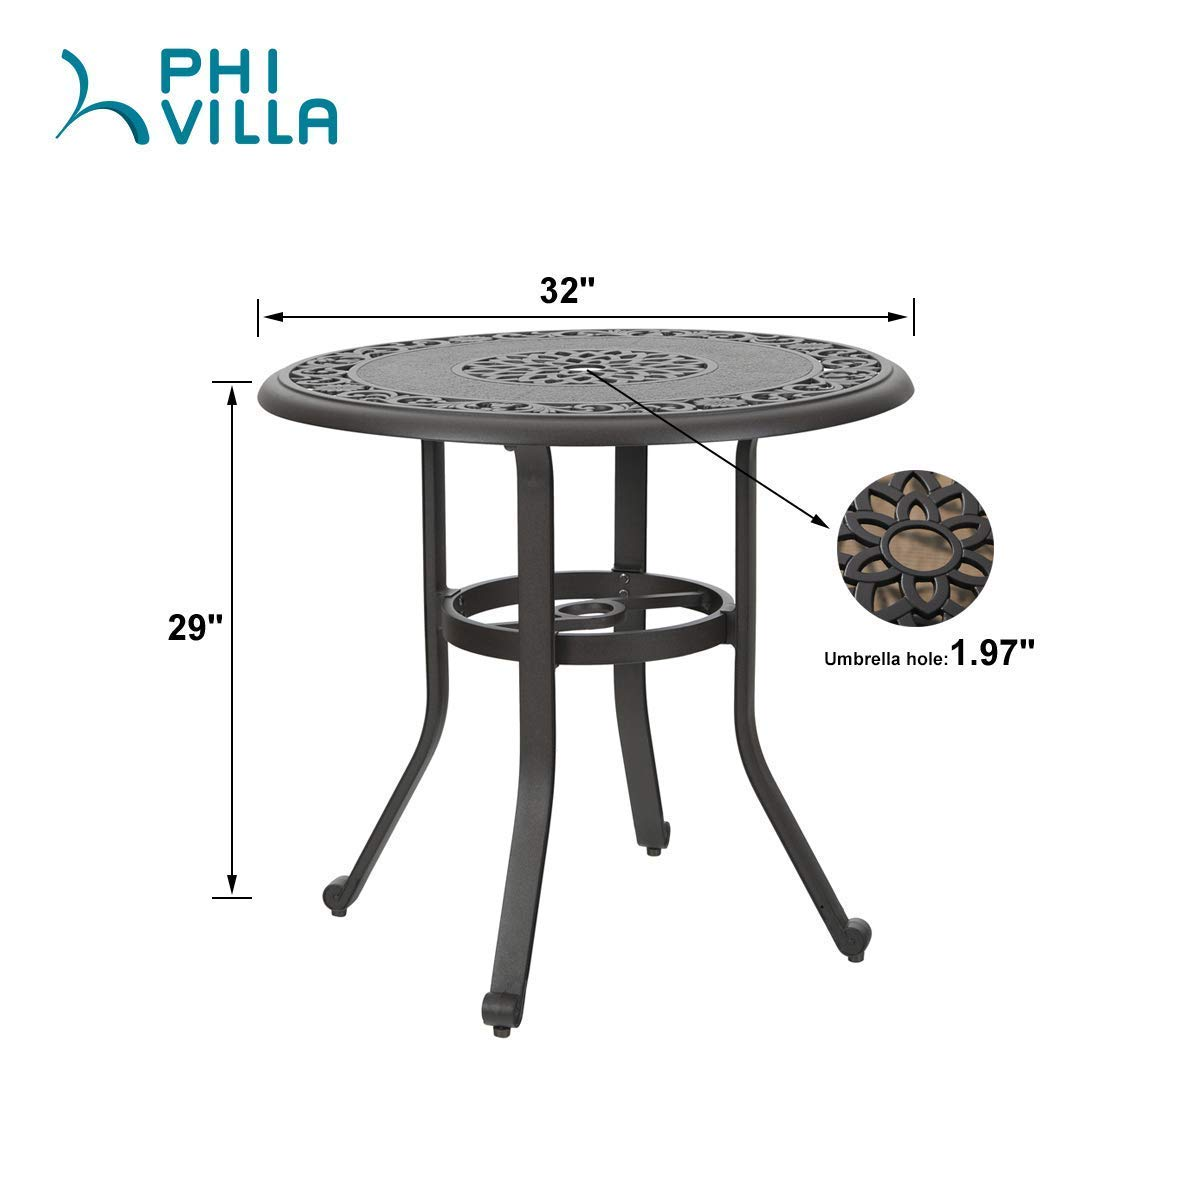 Patio, Lawn & Garden Dining Tables ghdonat.com 41.3 Round Table ...